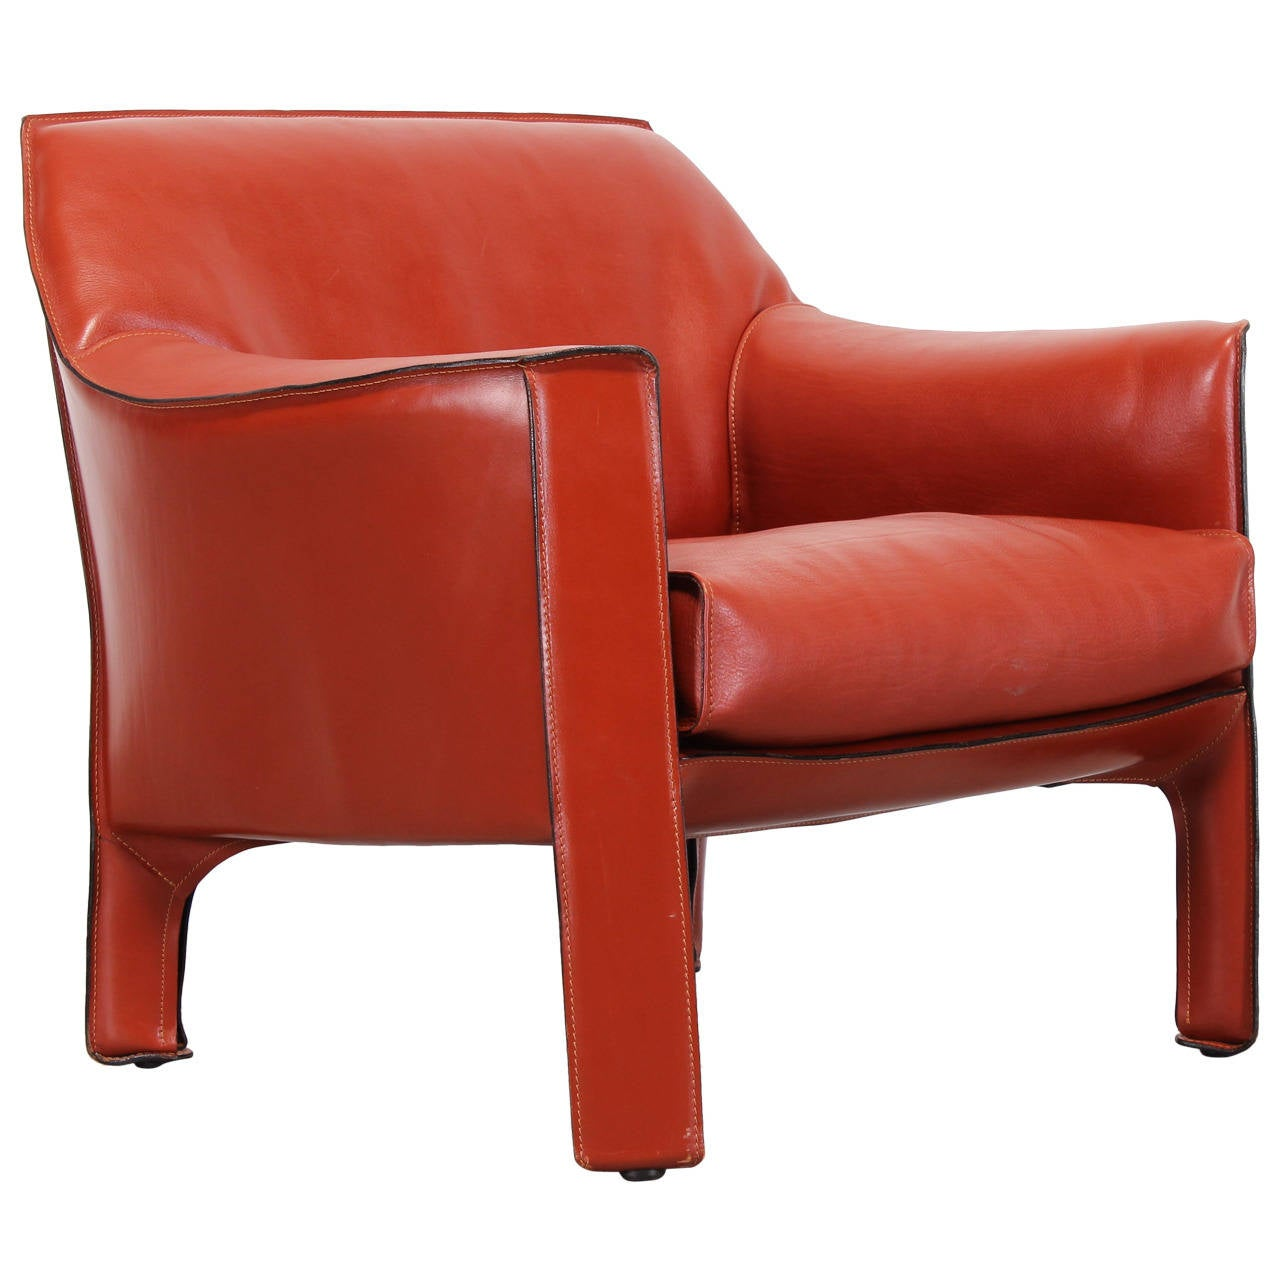 Large 415 Cab Chair By Mario Bellini For Cassina At 1stdibs